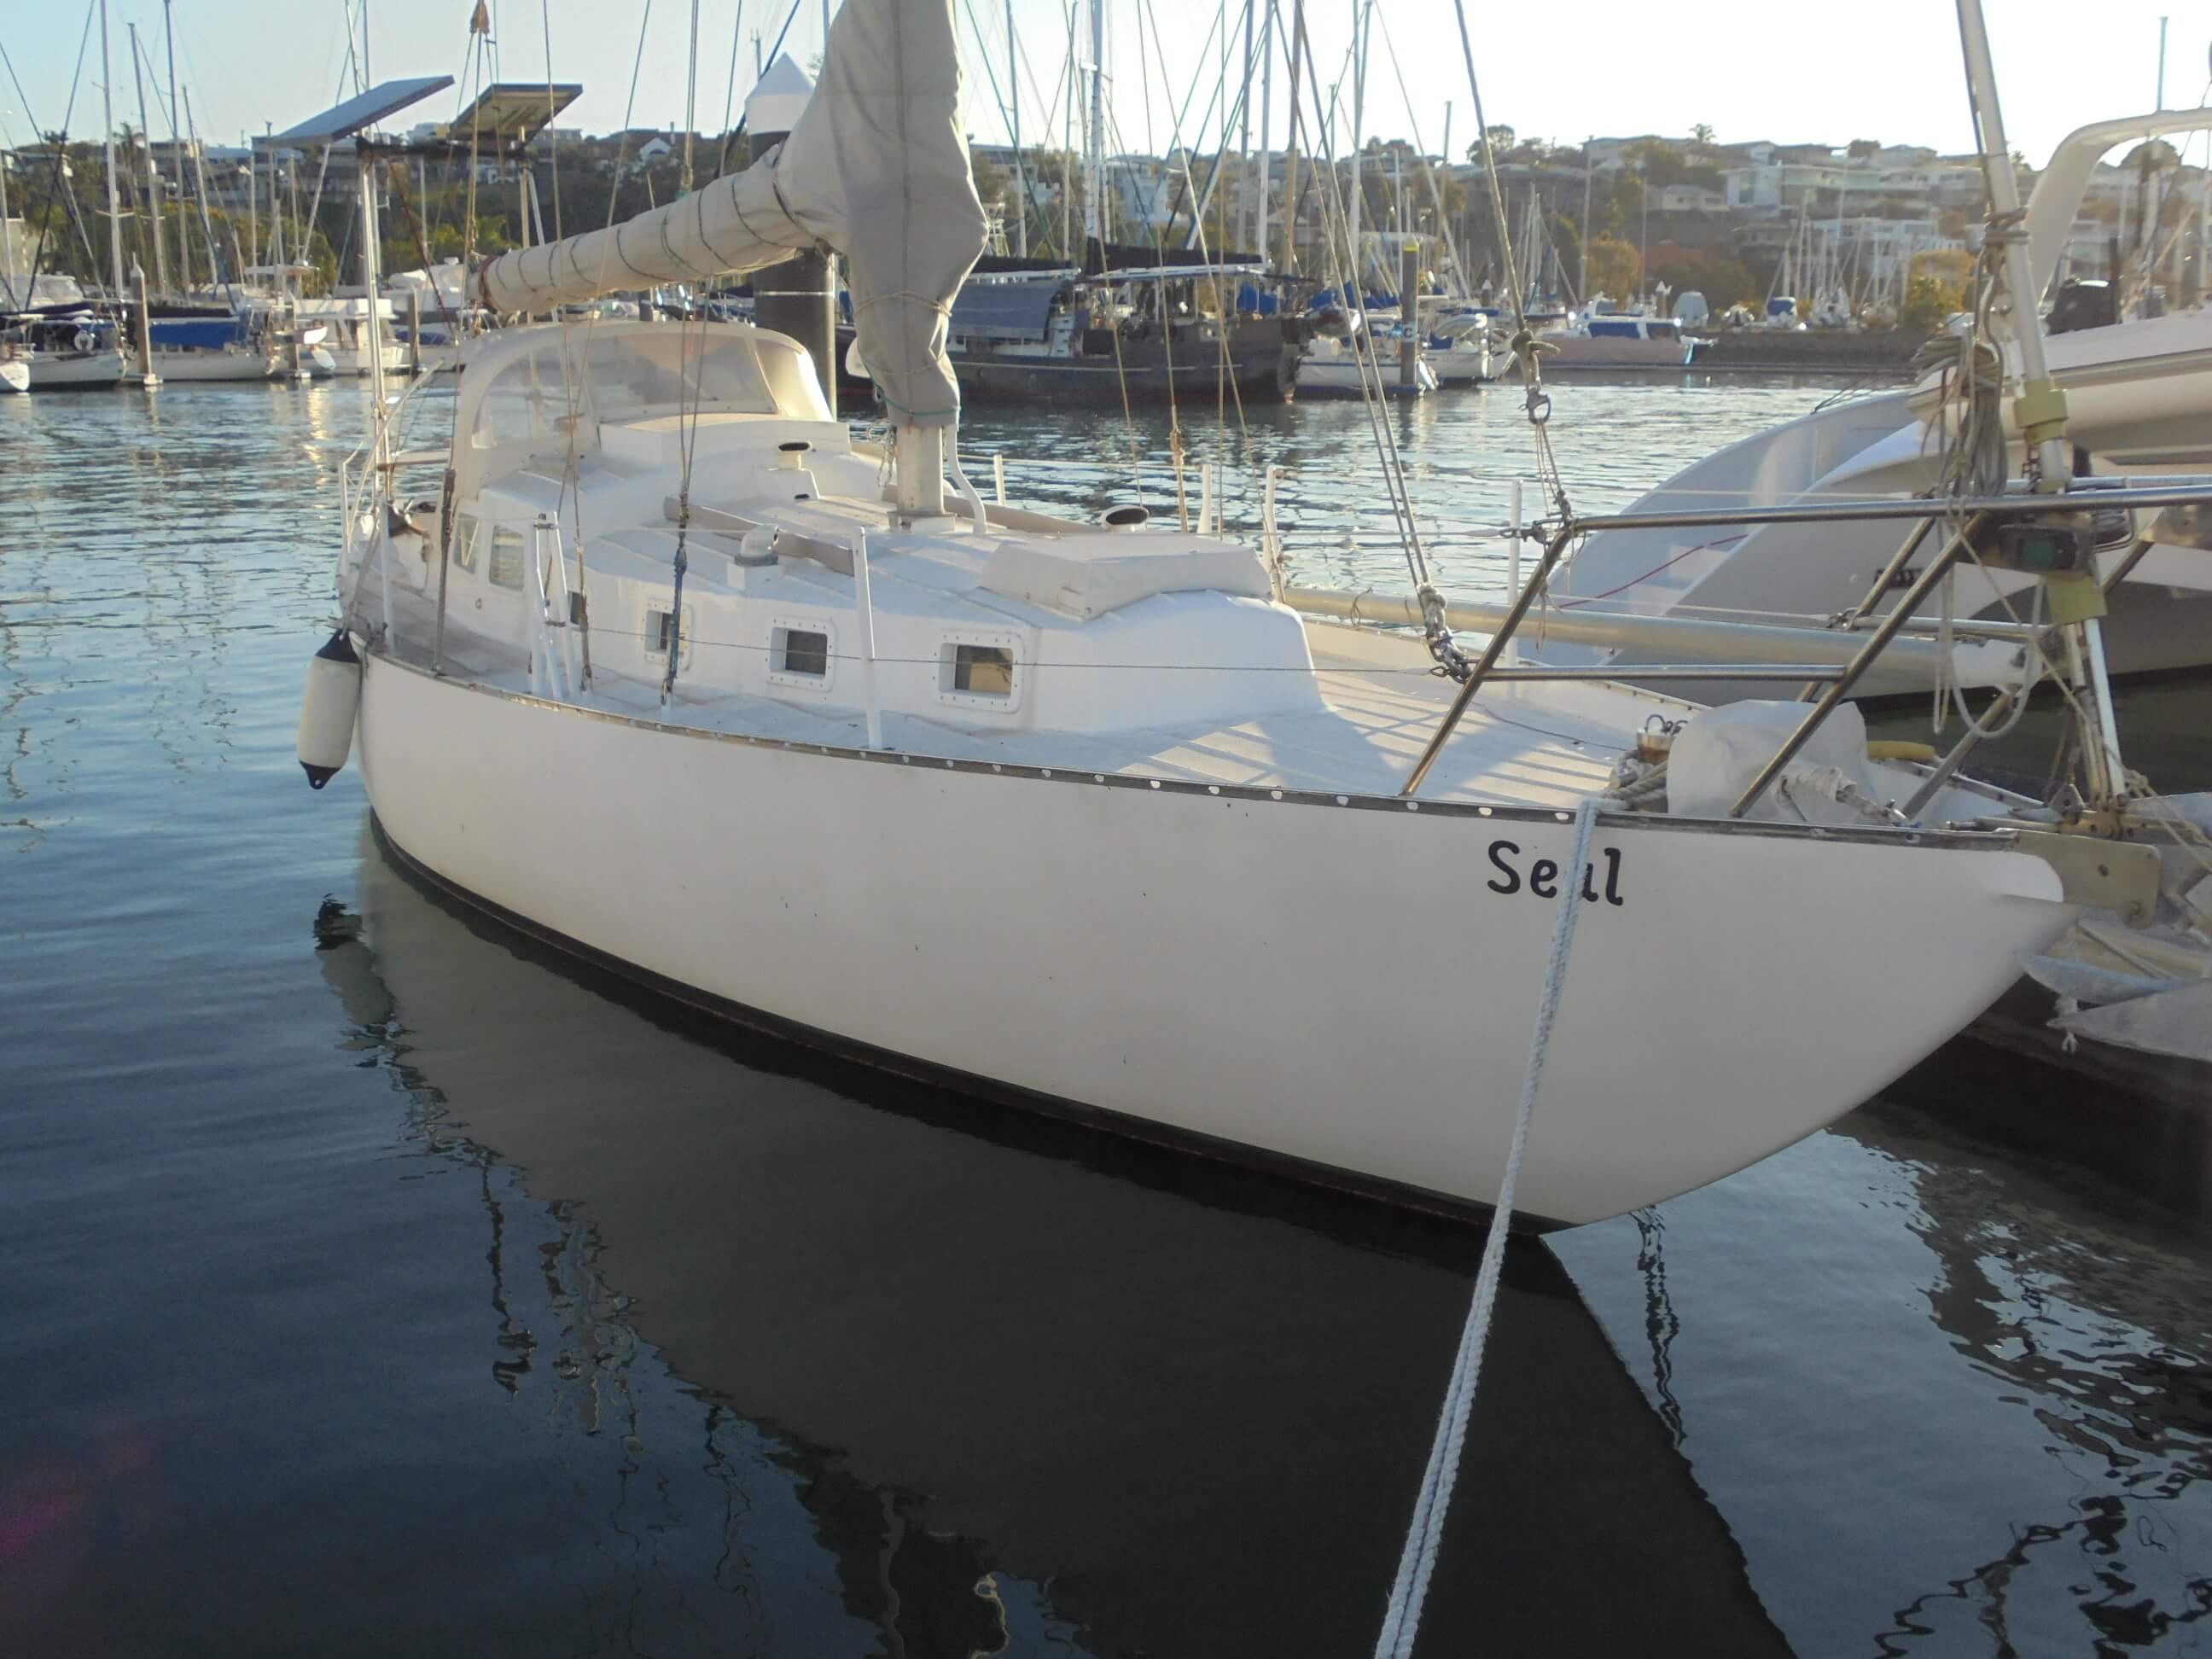 36ft Round Bilge Steel Sloop - Must be sold